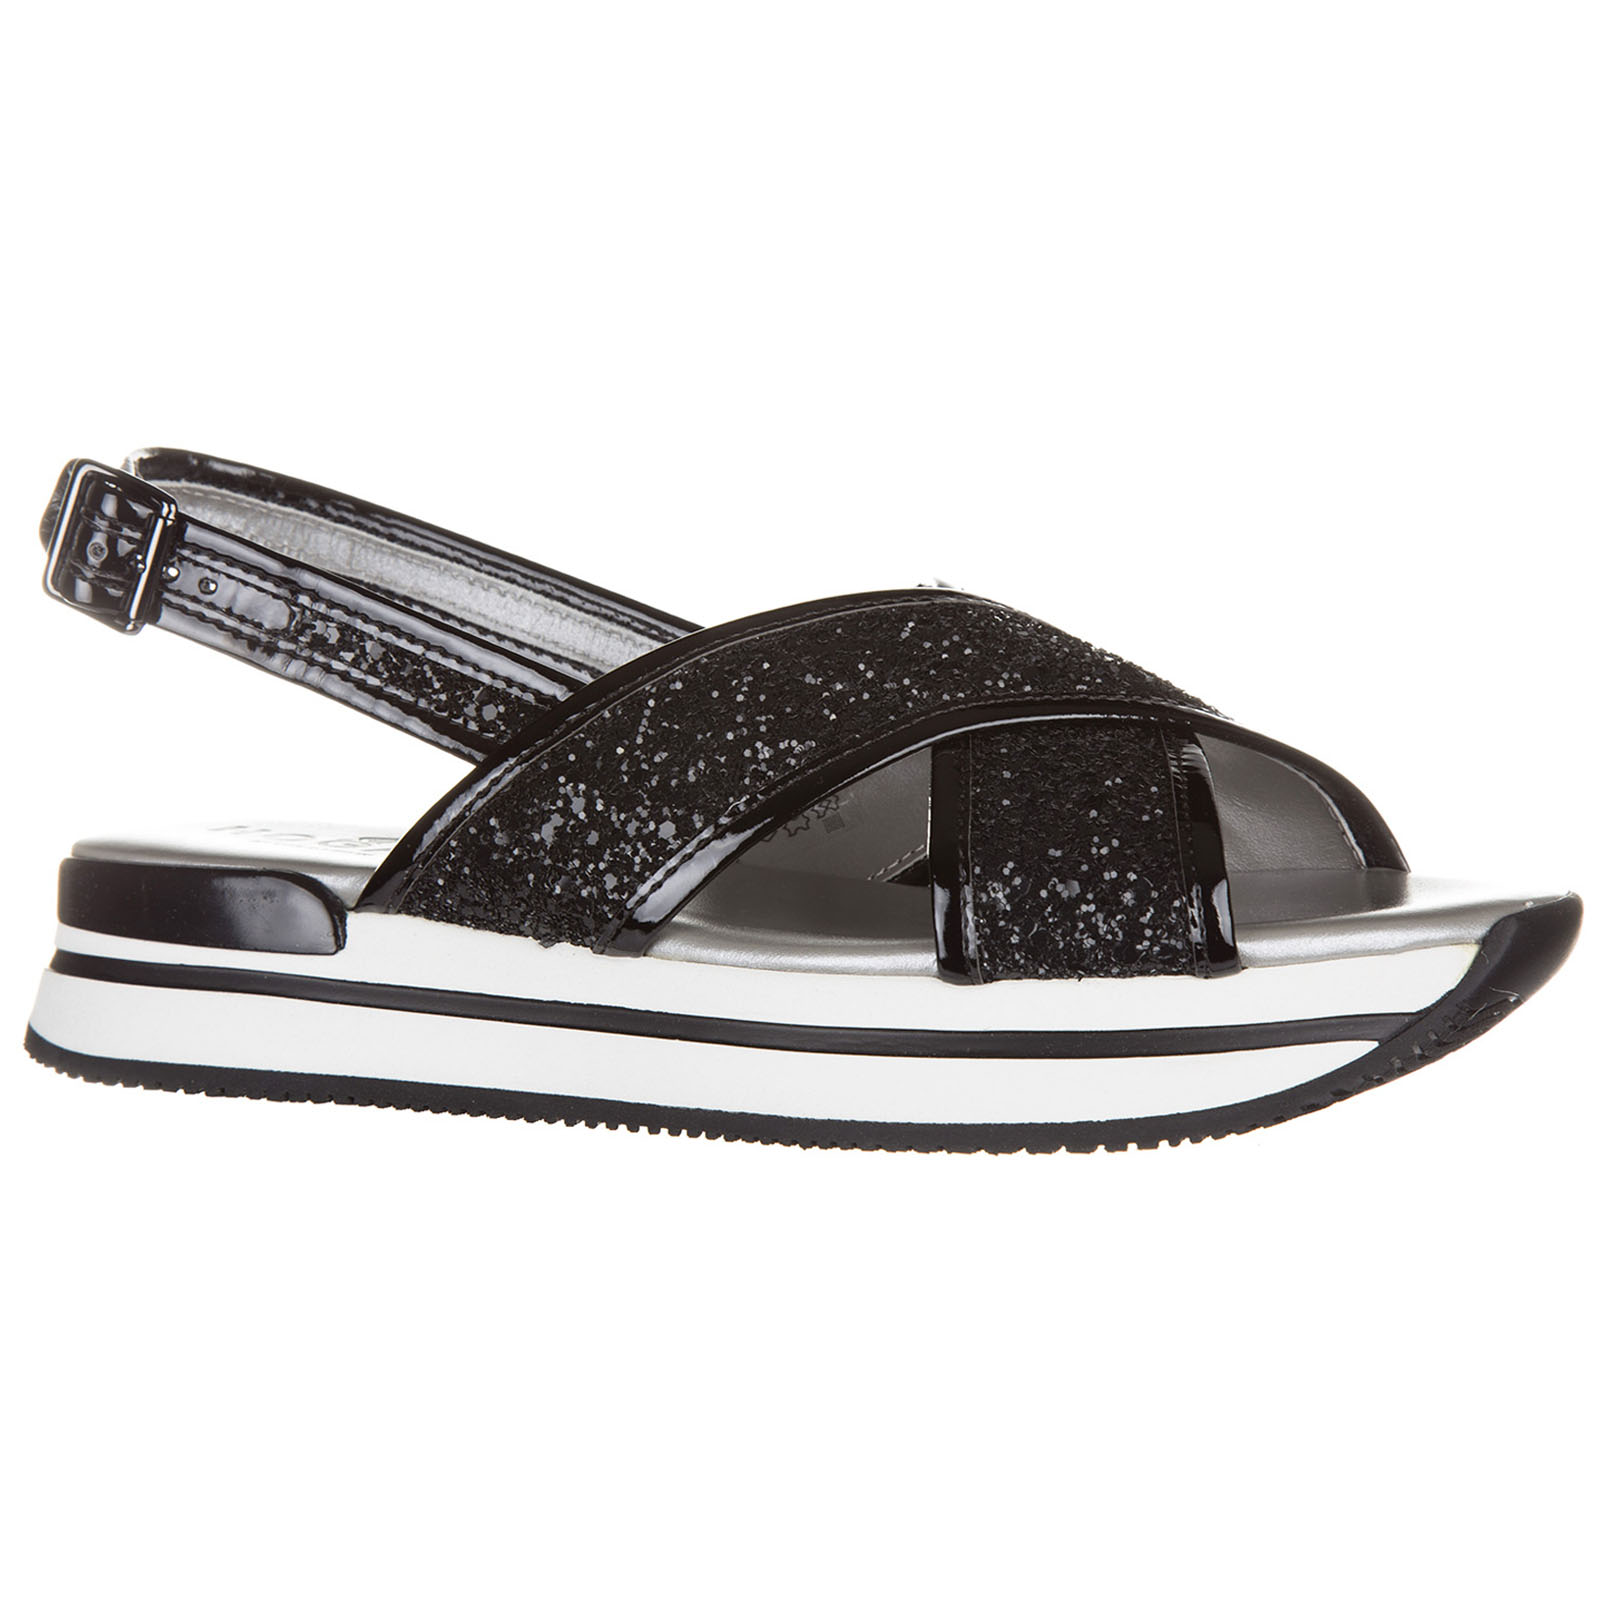 e47c585757 Women's leather sandals h257 glitter fasce incrociate Women's leather  sandals h257 glitter fasce incrociate ...